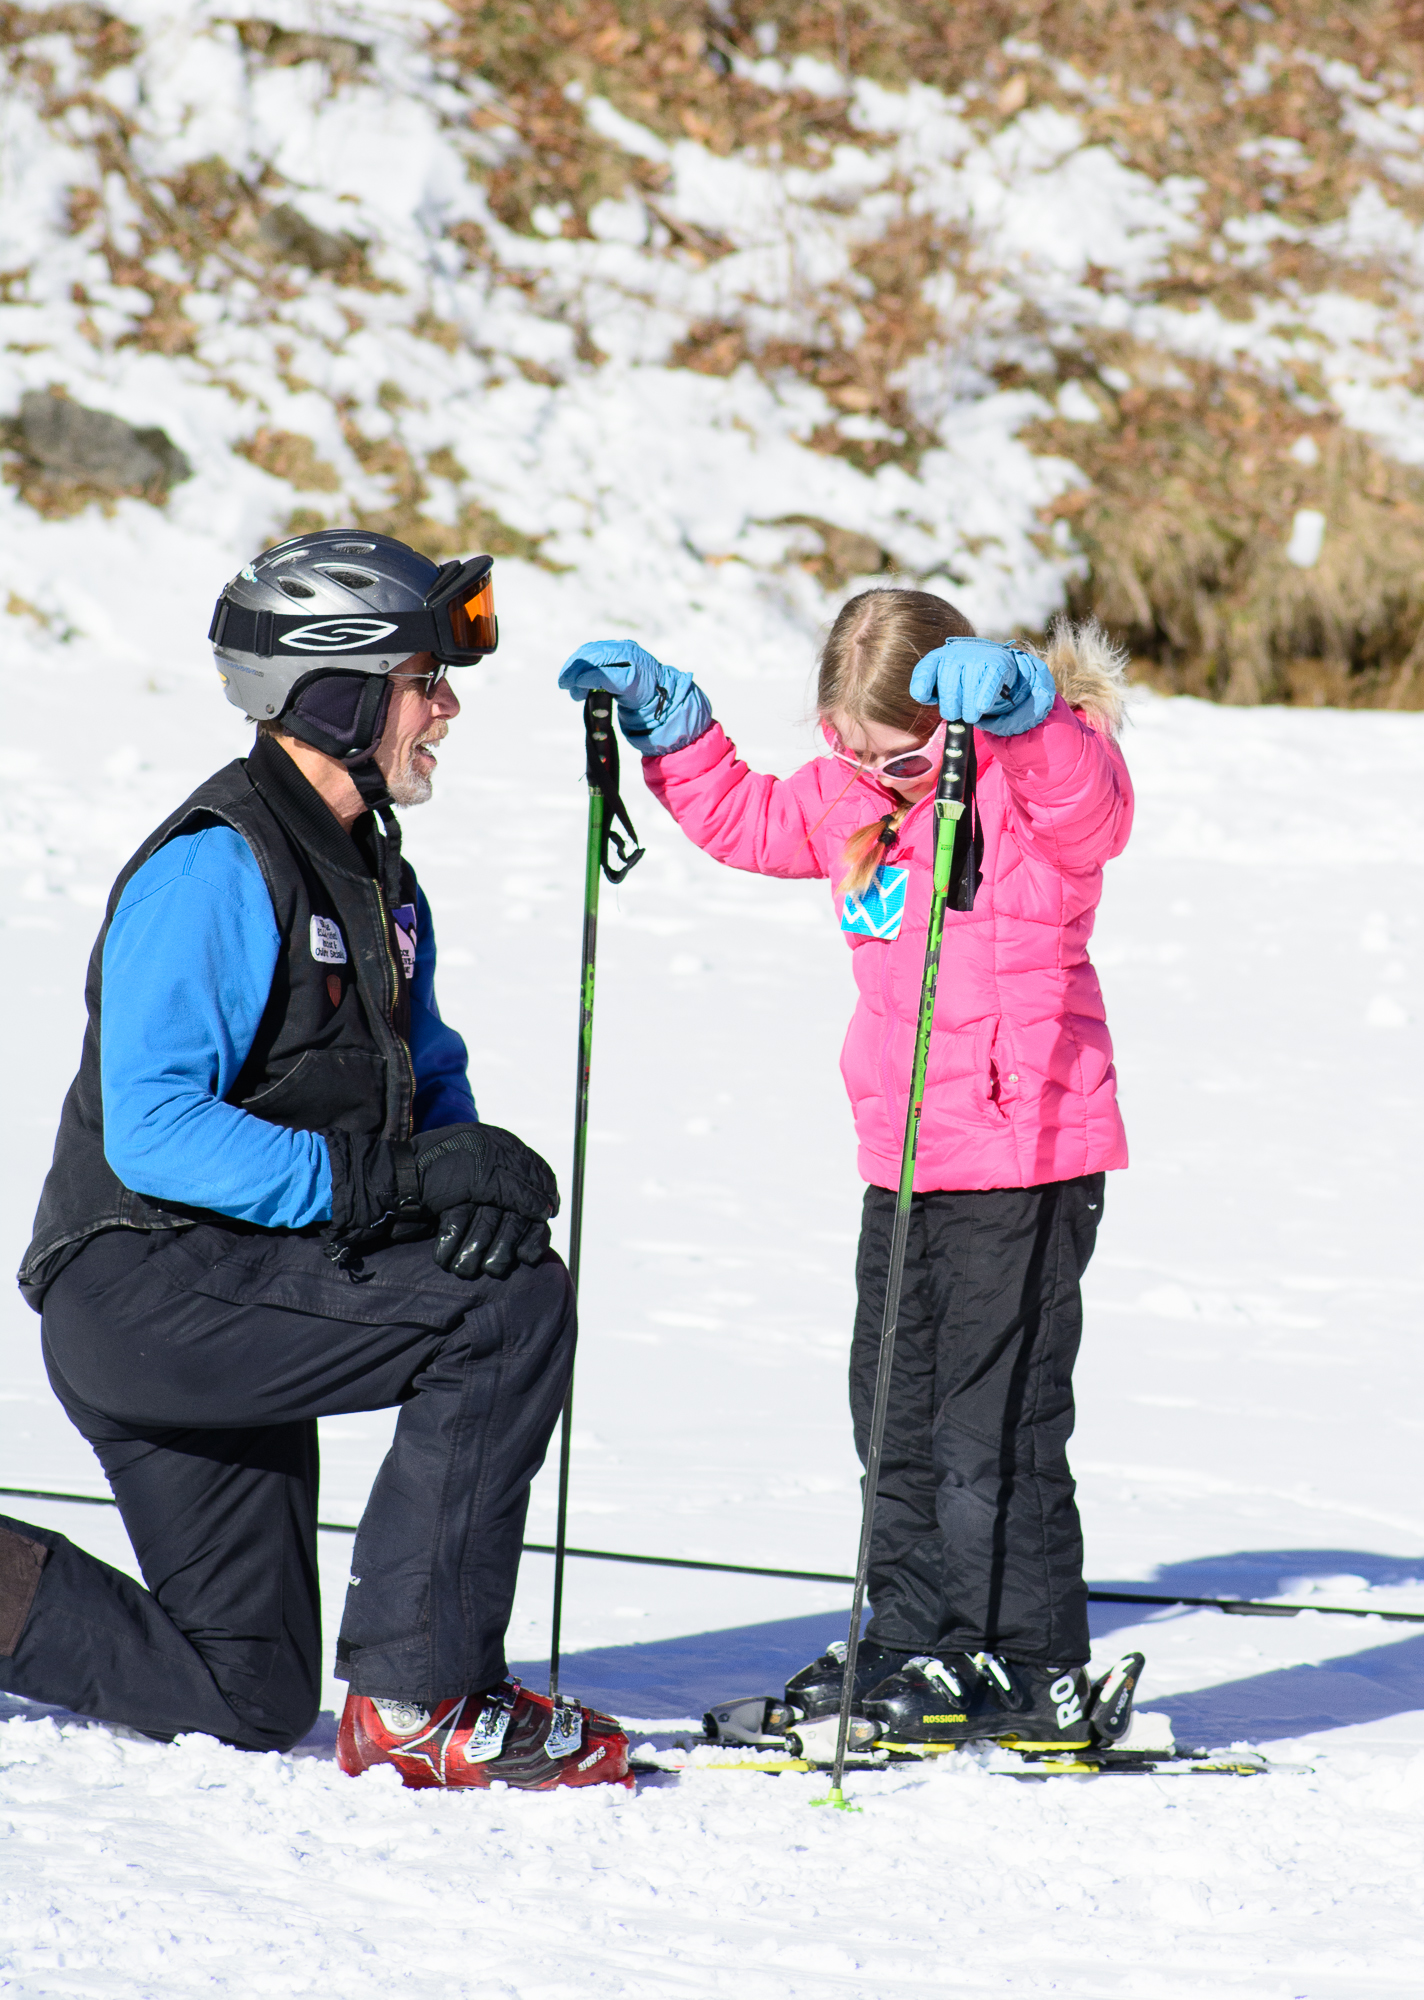 Ski Lessons at Beech Mountain Resort